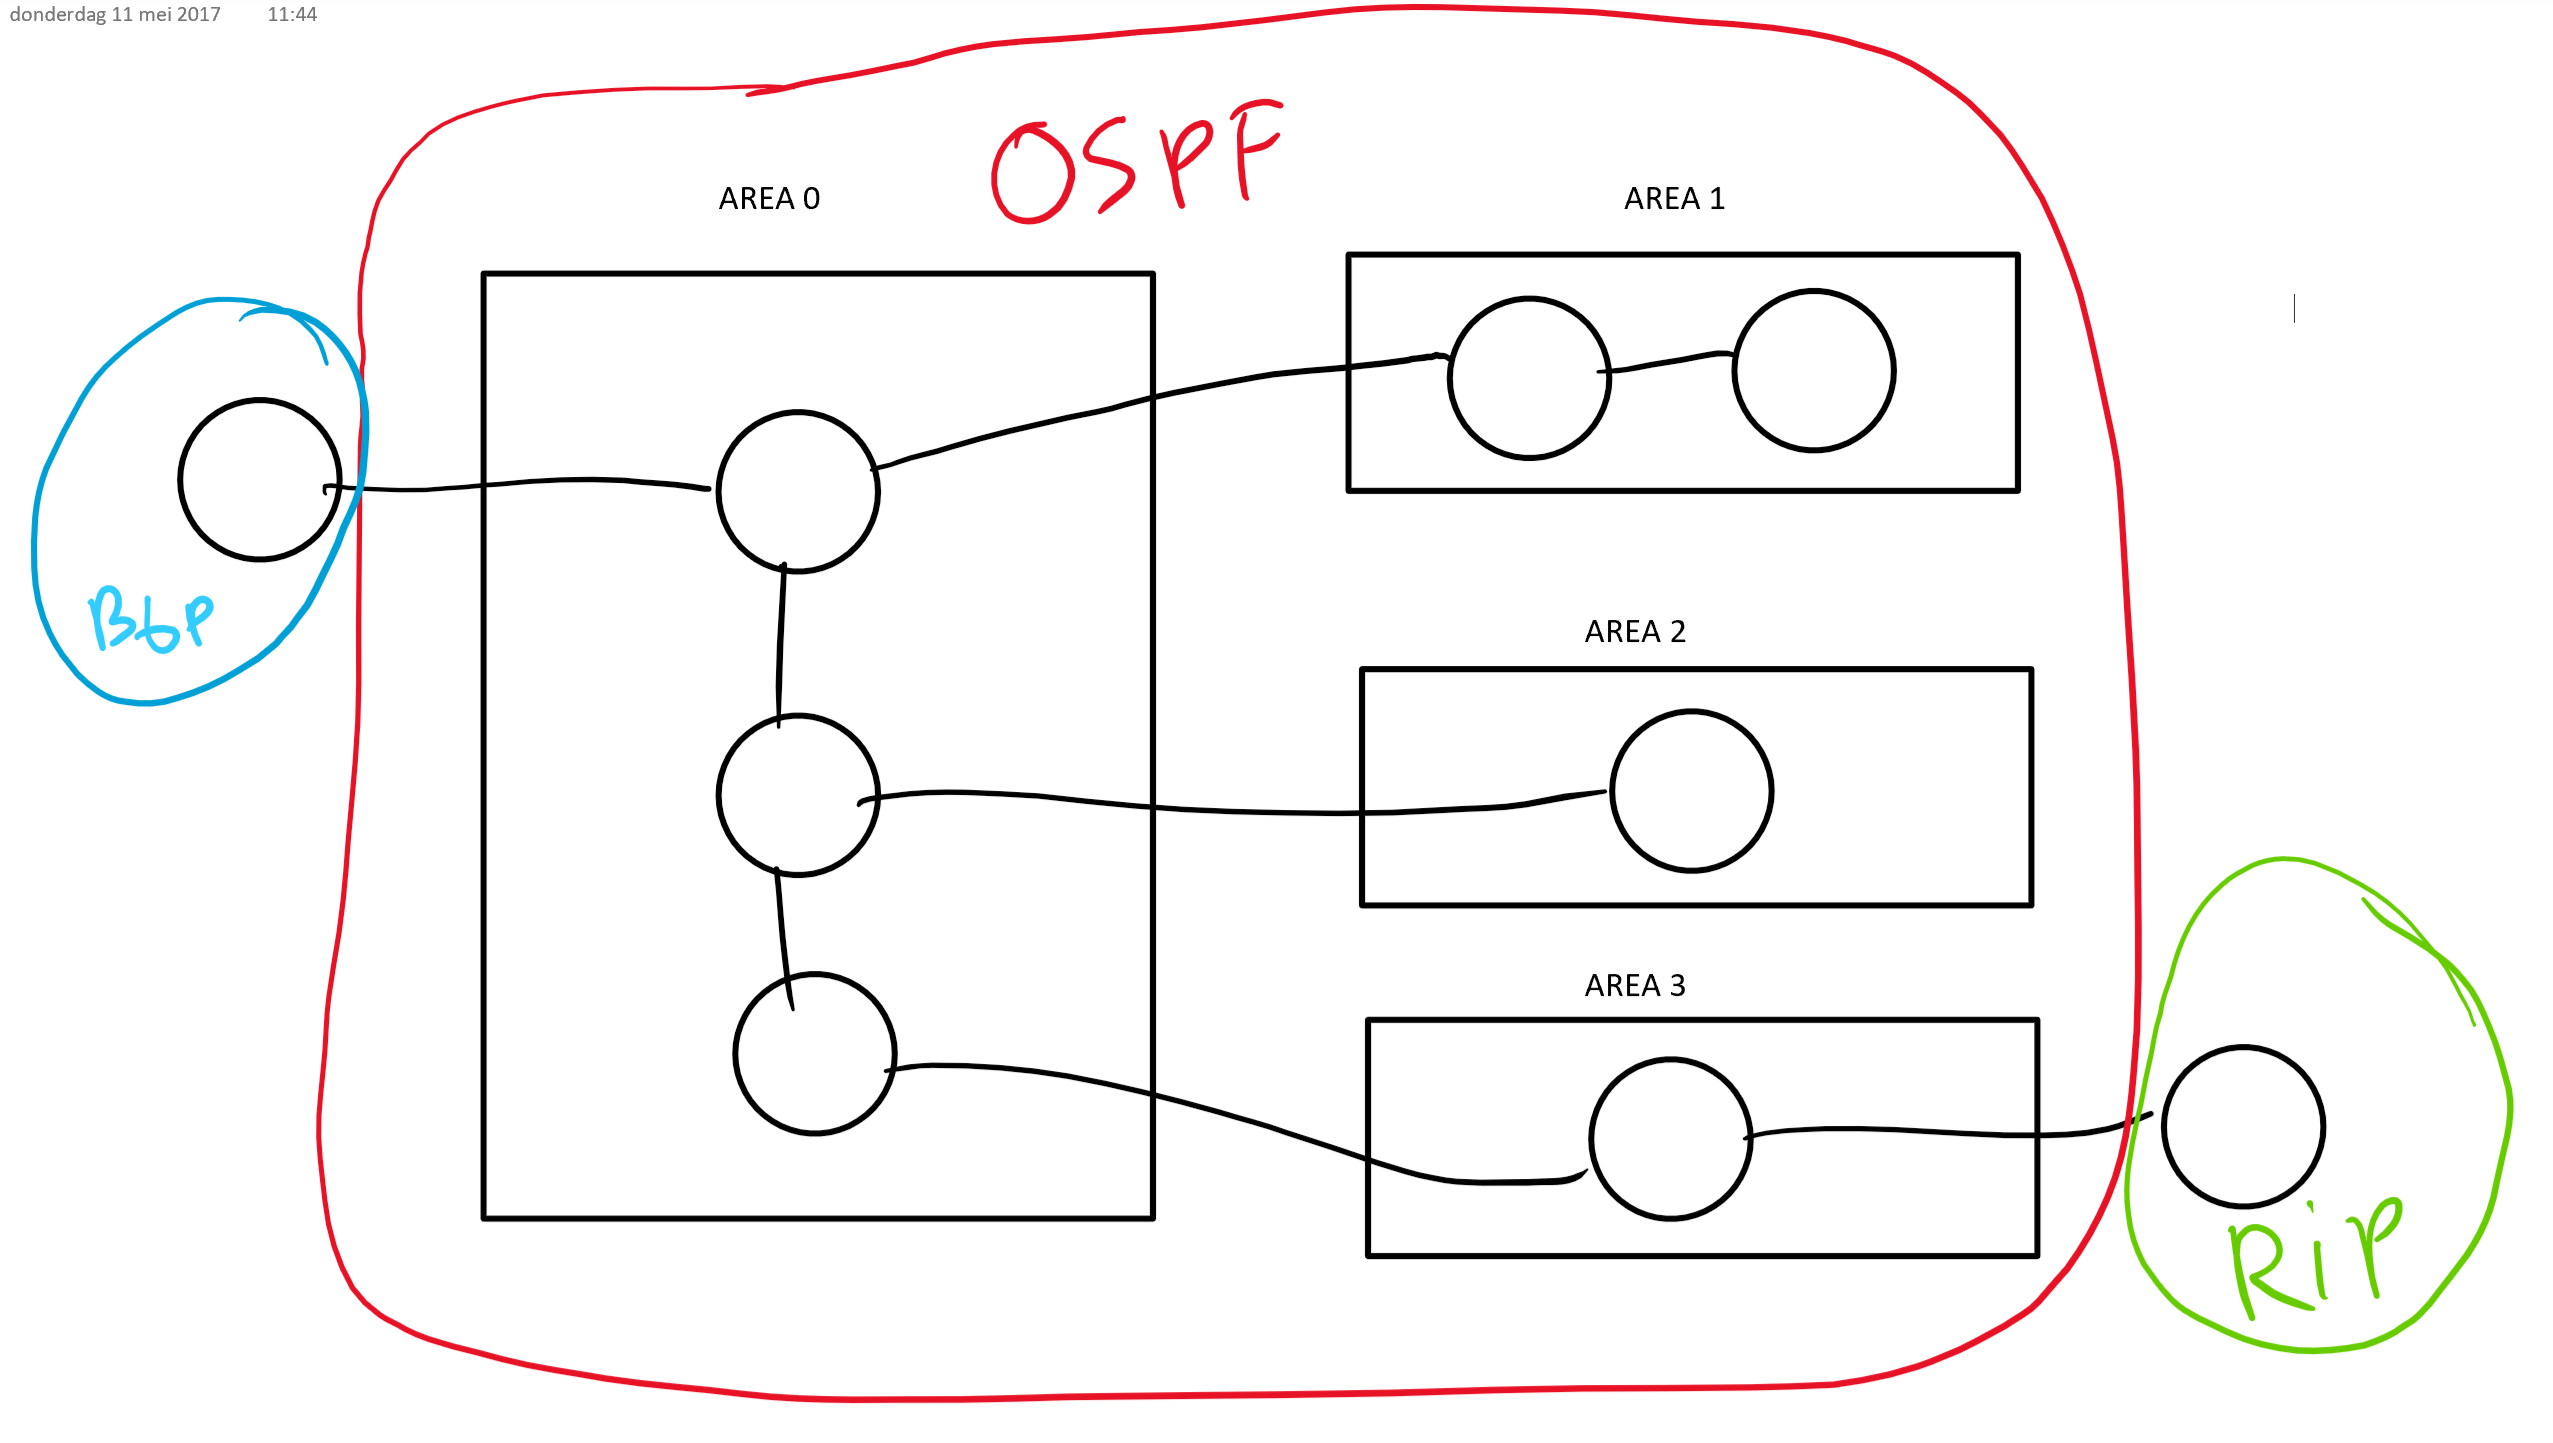 bgp-ospf-rip-routing